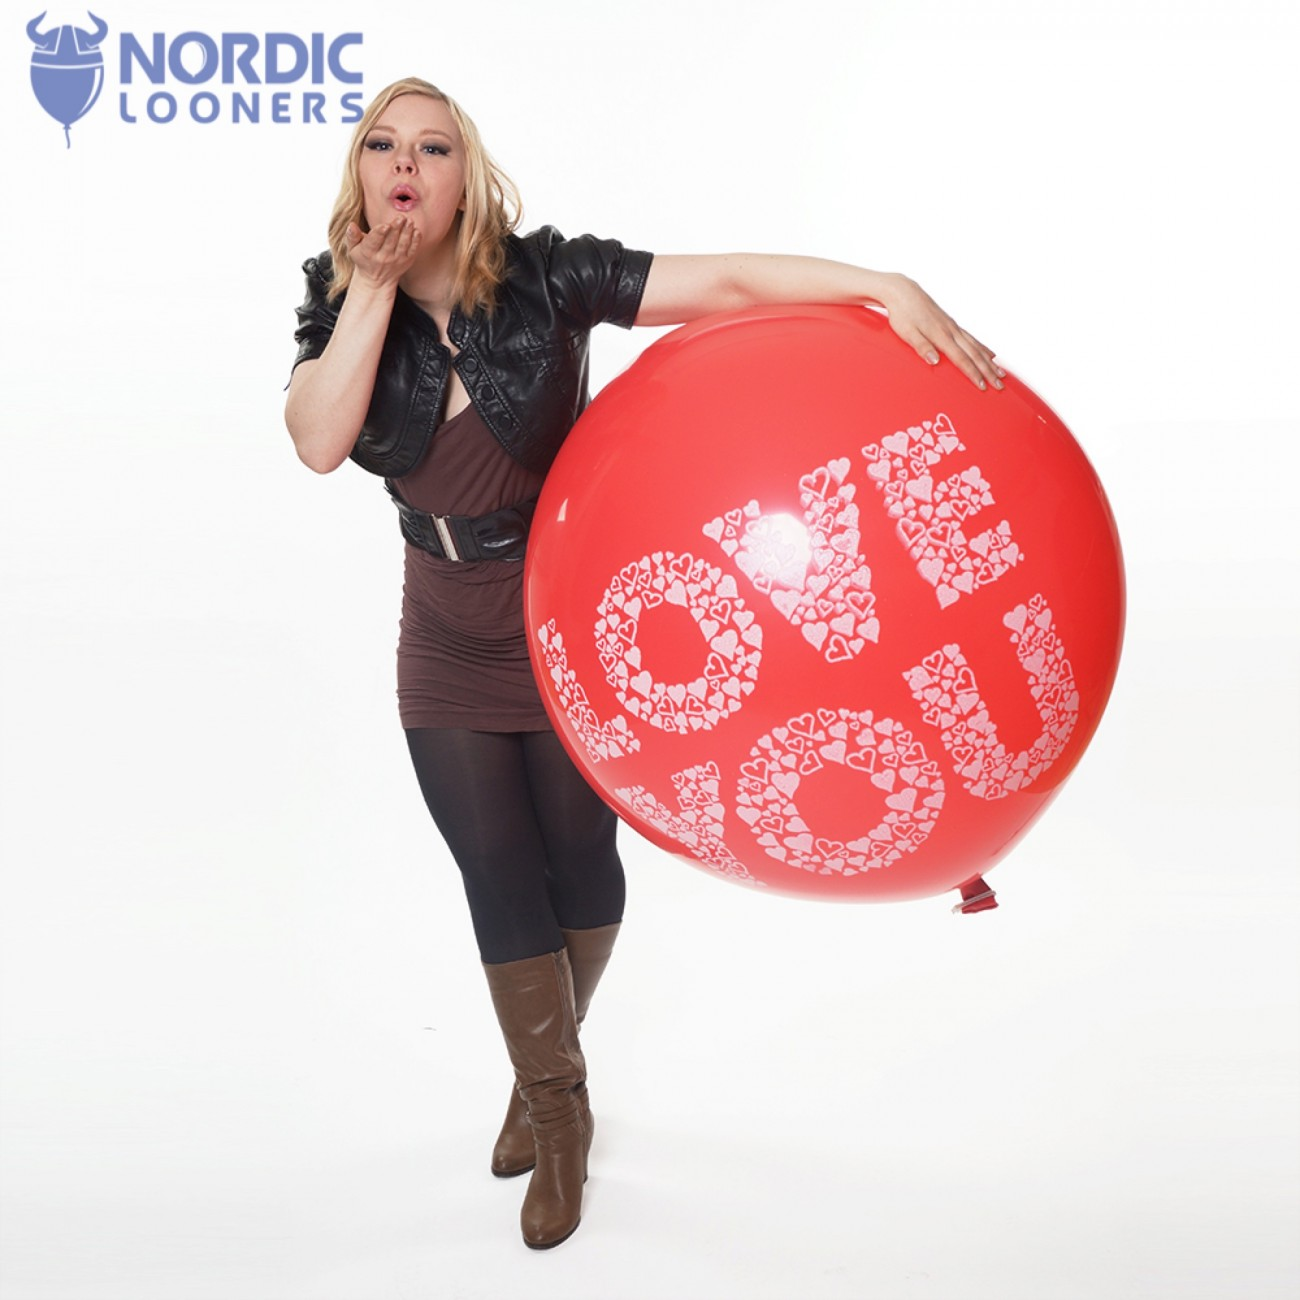 "Cattex 35\"" Love you PT/200DS.M1261 18,23 DKK Nordic Looners"